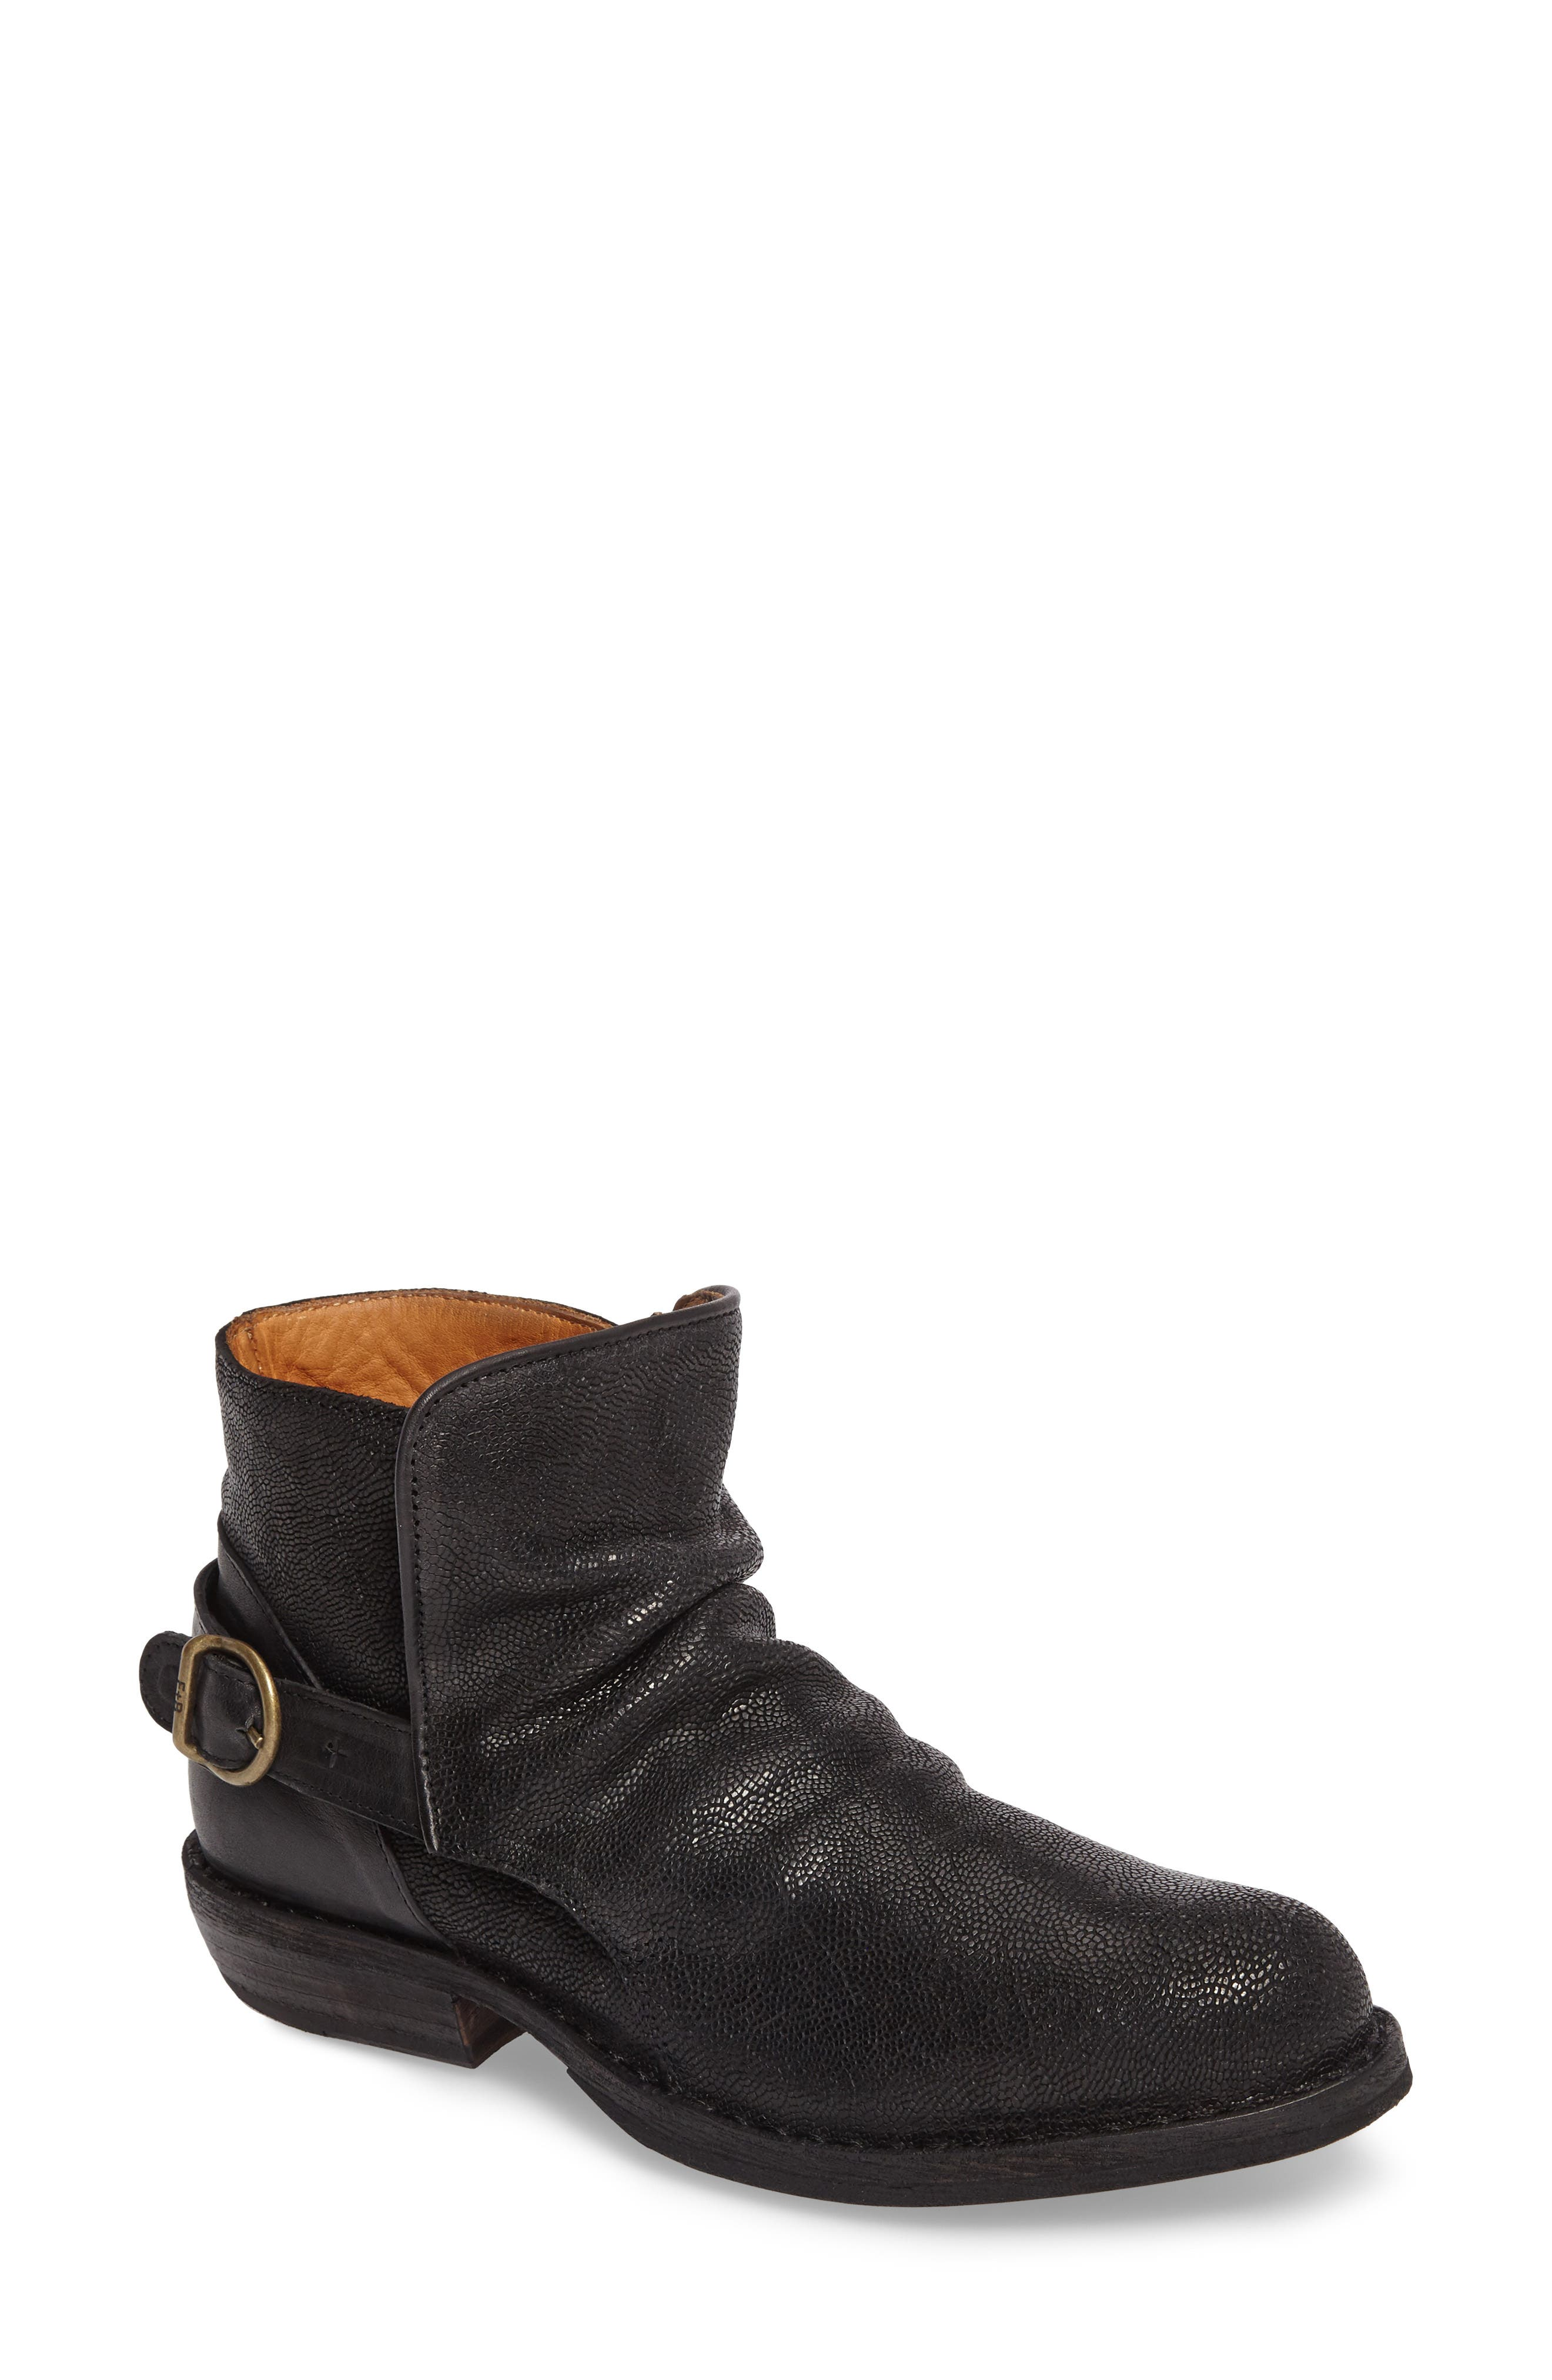 'Carol' Ankle Boot,                         Main,                         color, 002